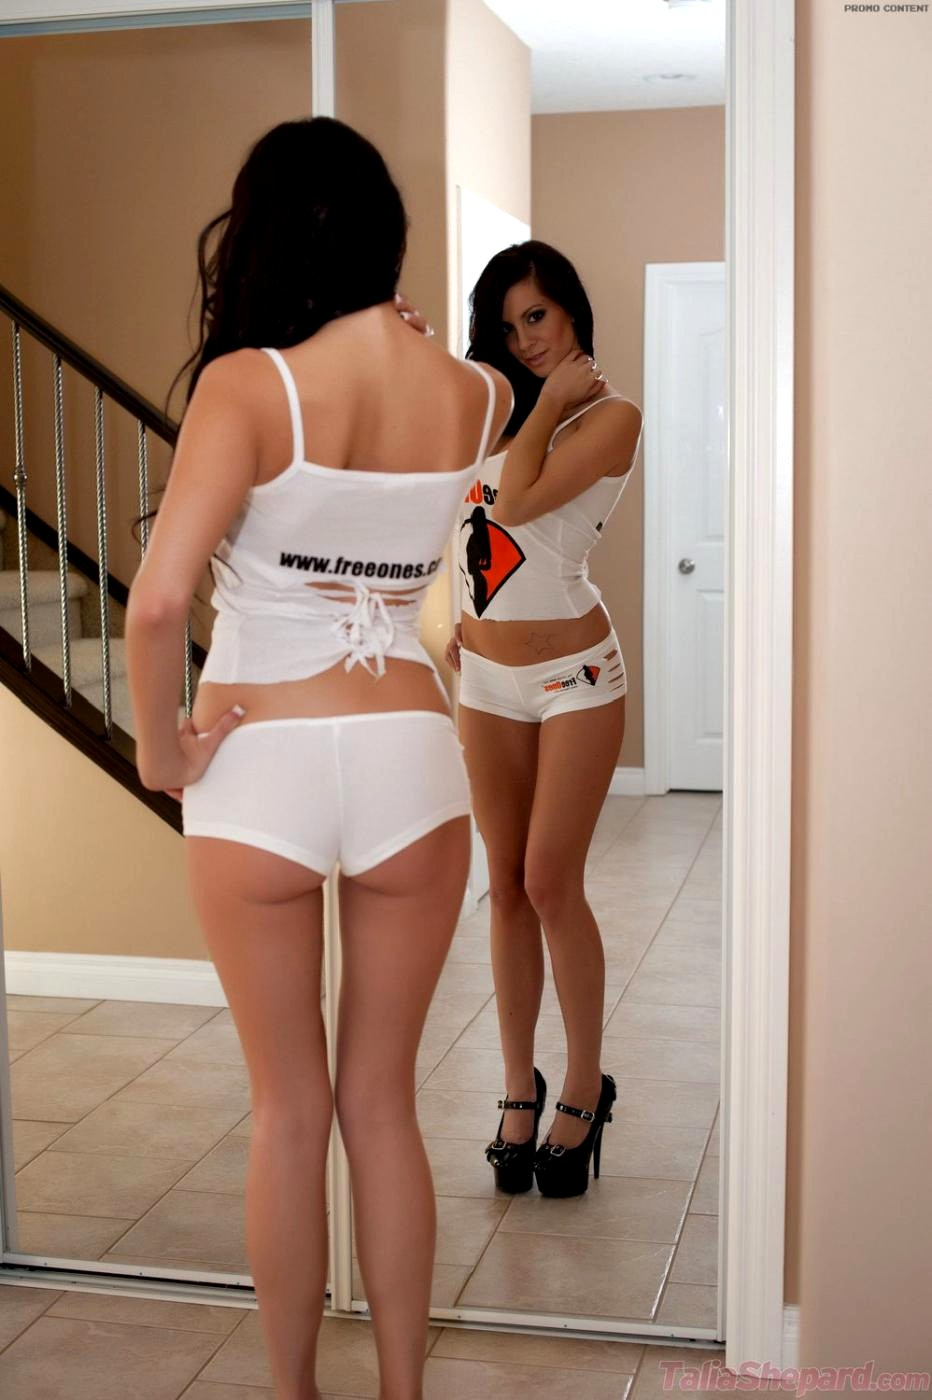 Latino lesbians pictures